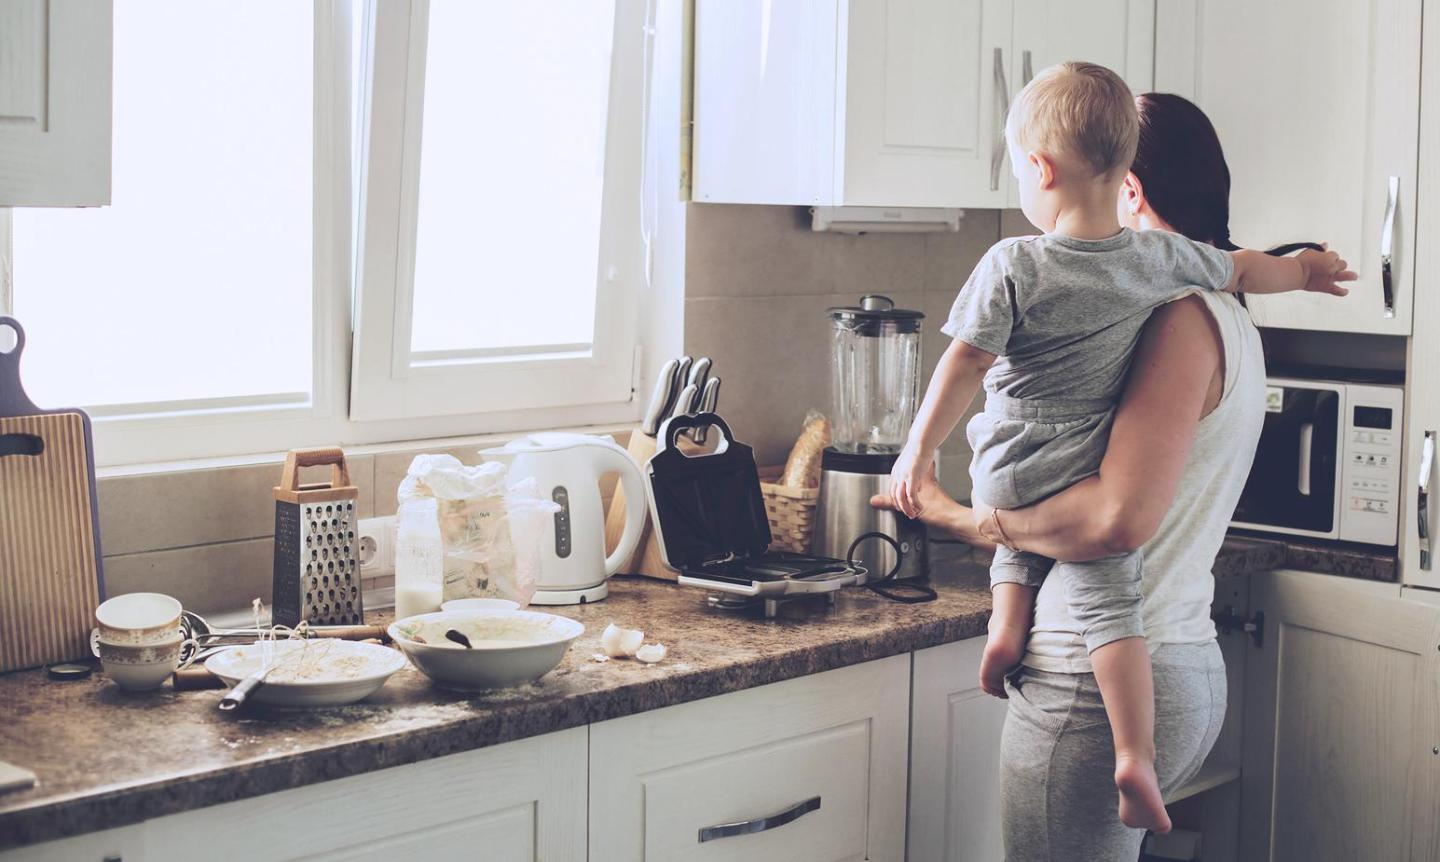 A mother with her child in the kitchen